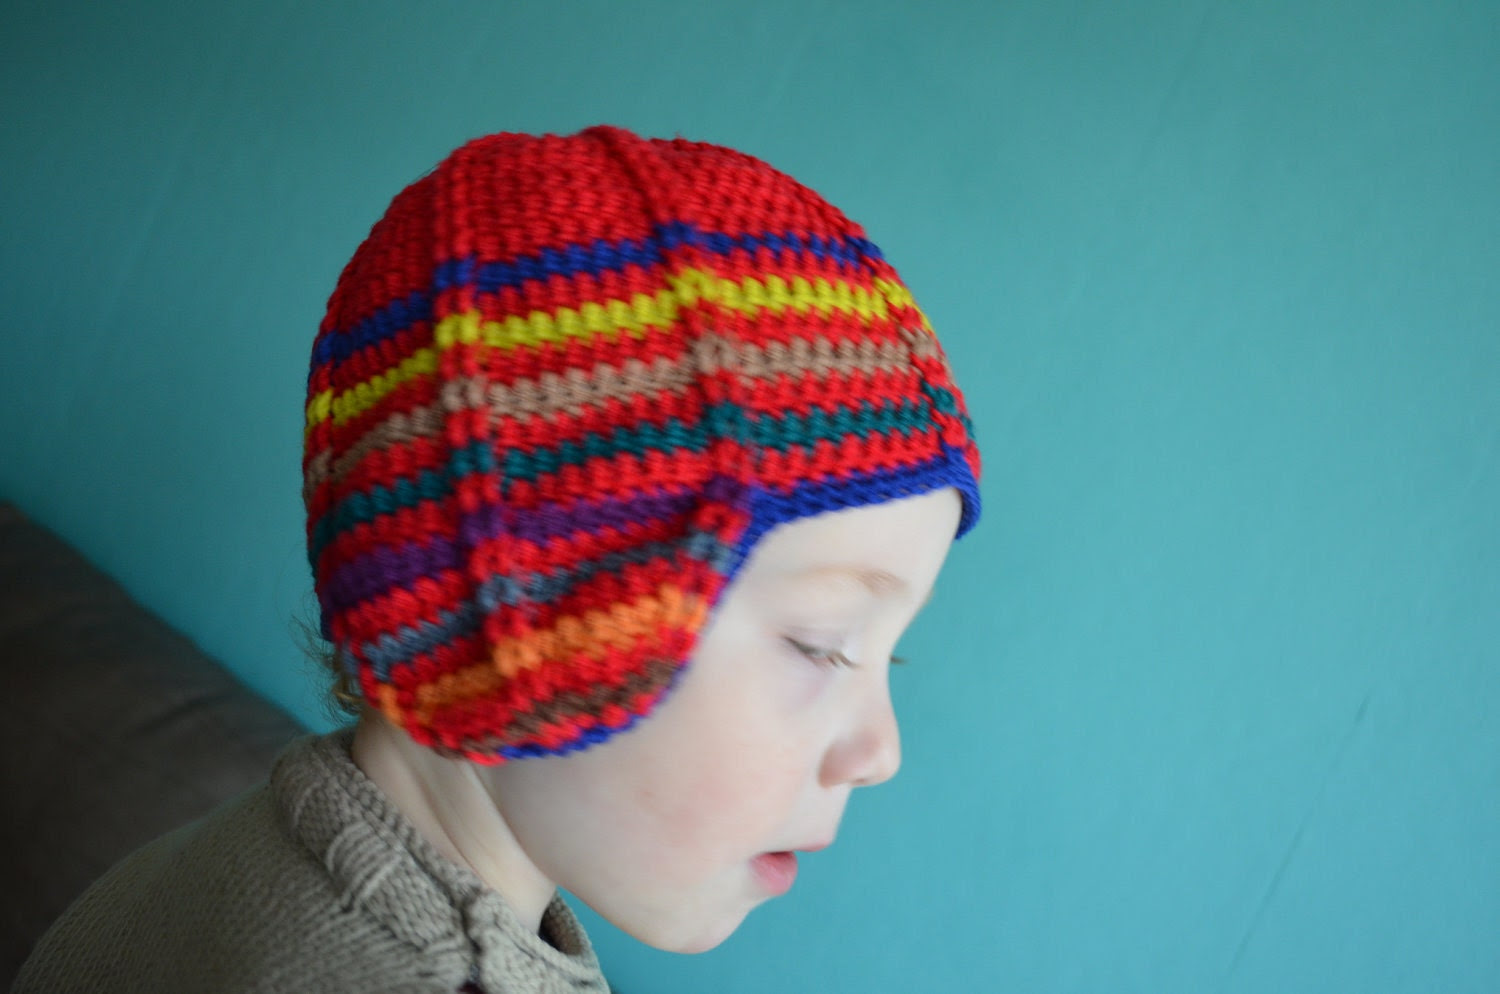 Crochet pattern : retro inspired hat for children in 3 sizes - vicarno